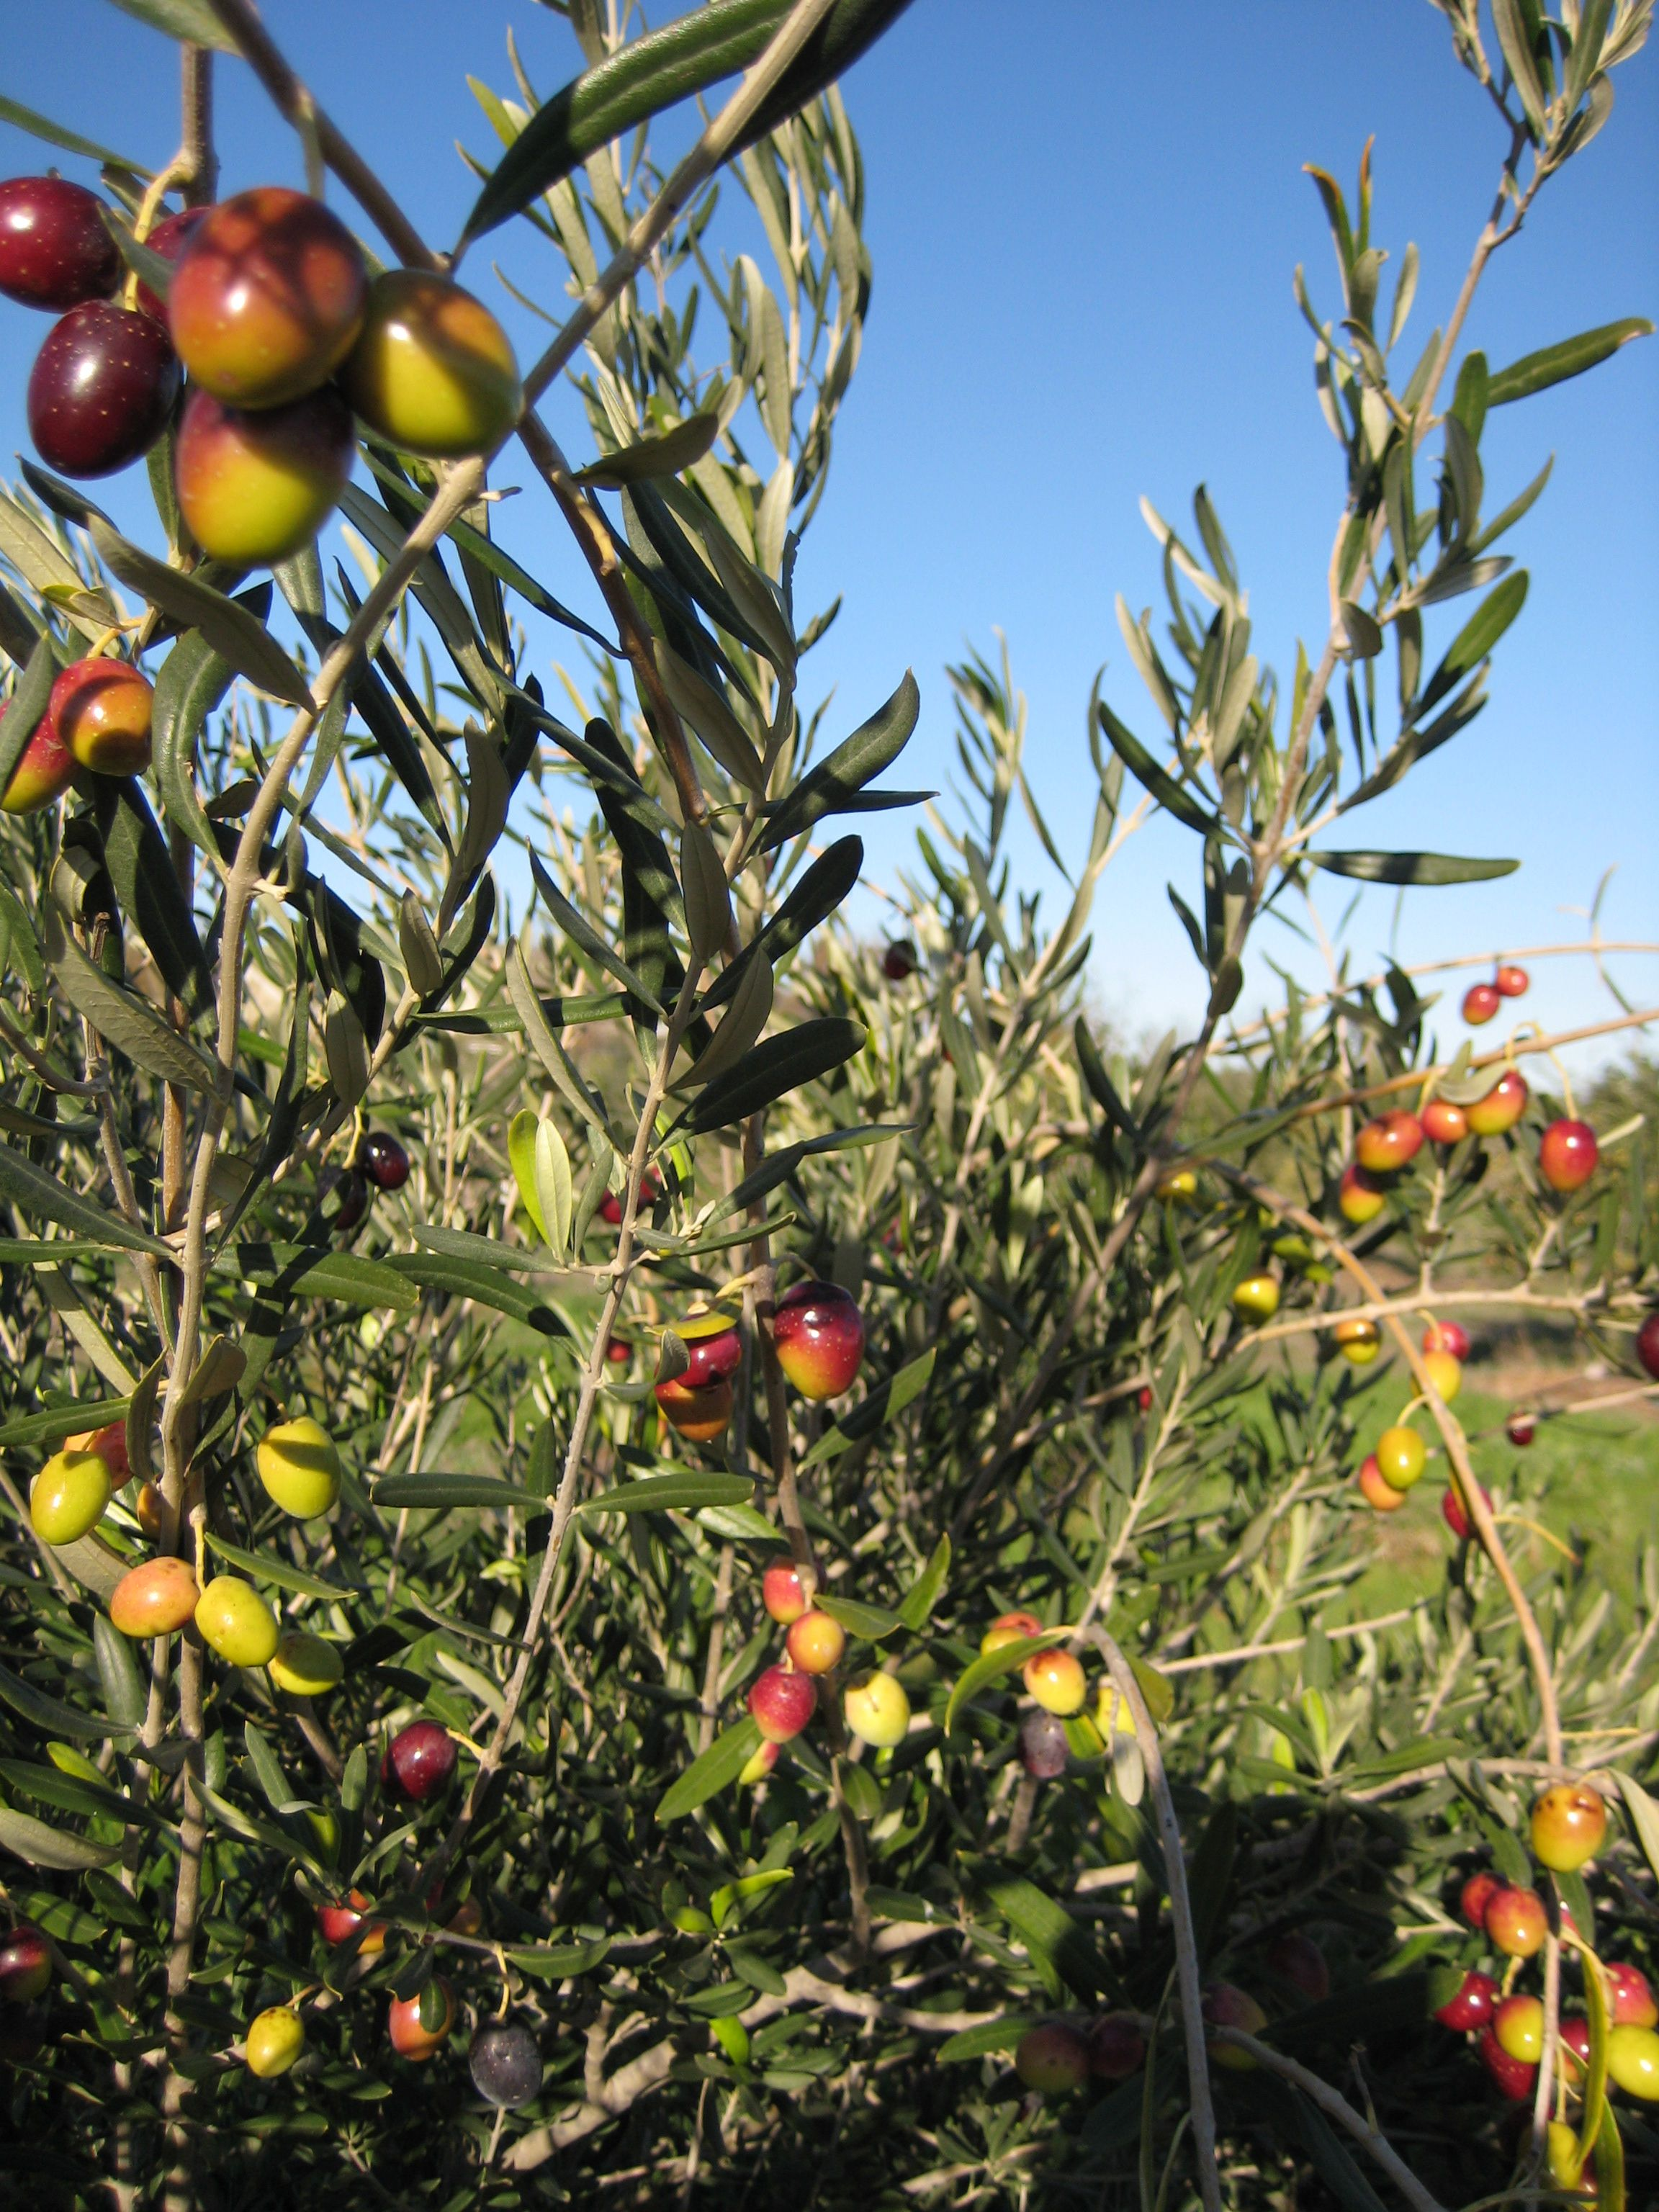 Coratina Olive A Very Adaptable Olive Tree Used For Oil -9581